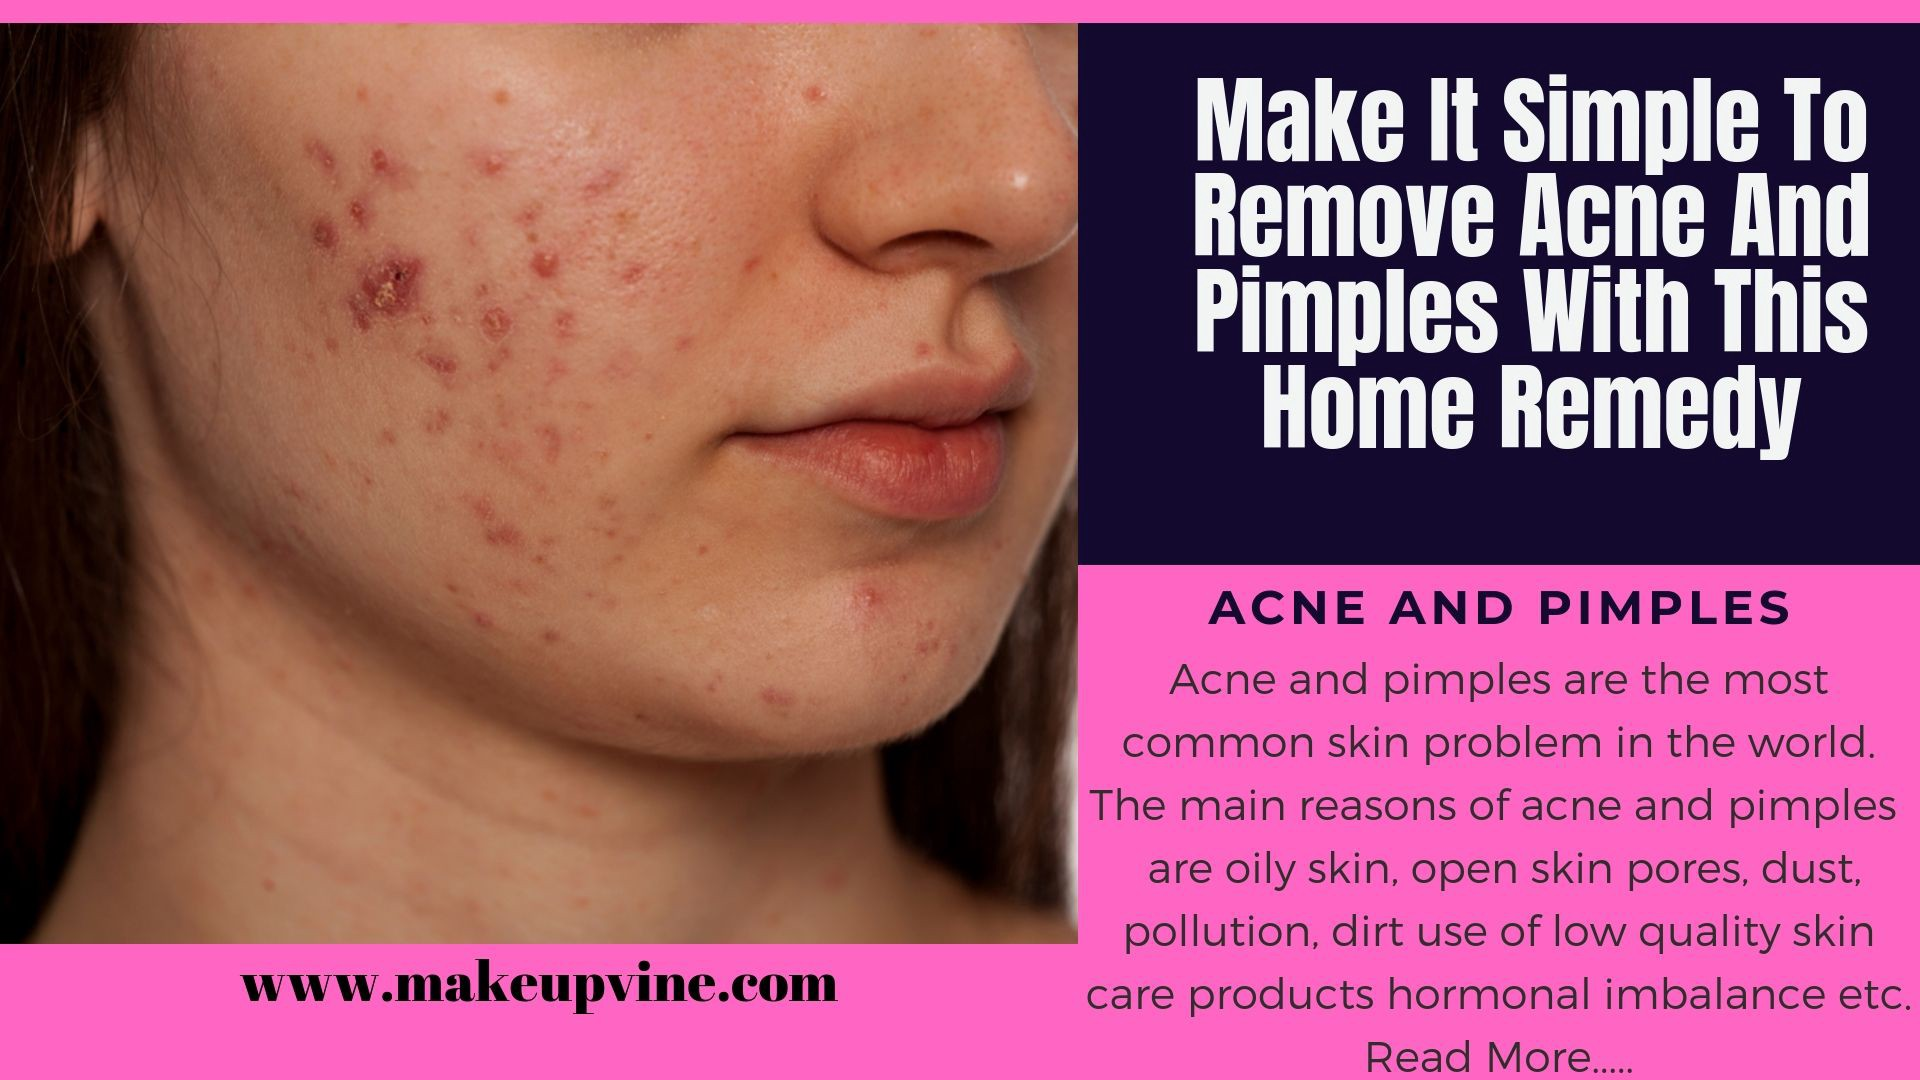 Make It Simple To Remove Acne And Pimples With This Home Remedy